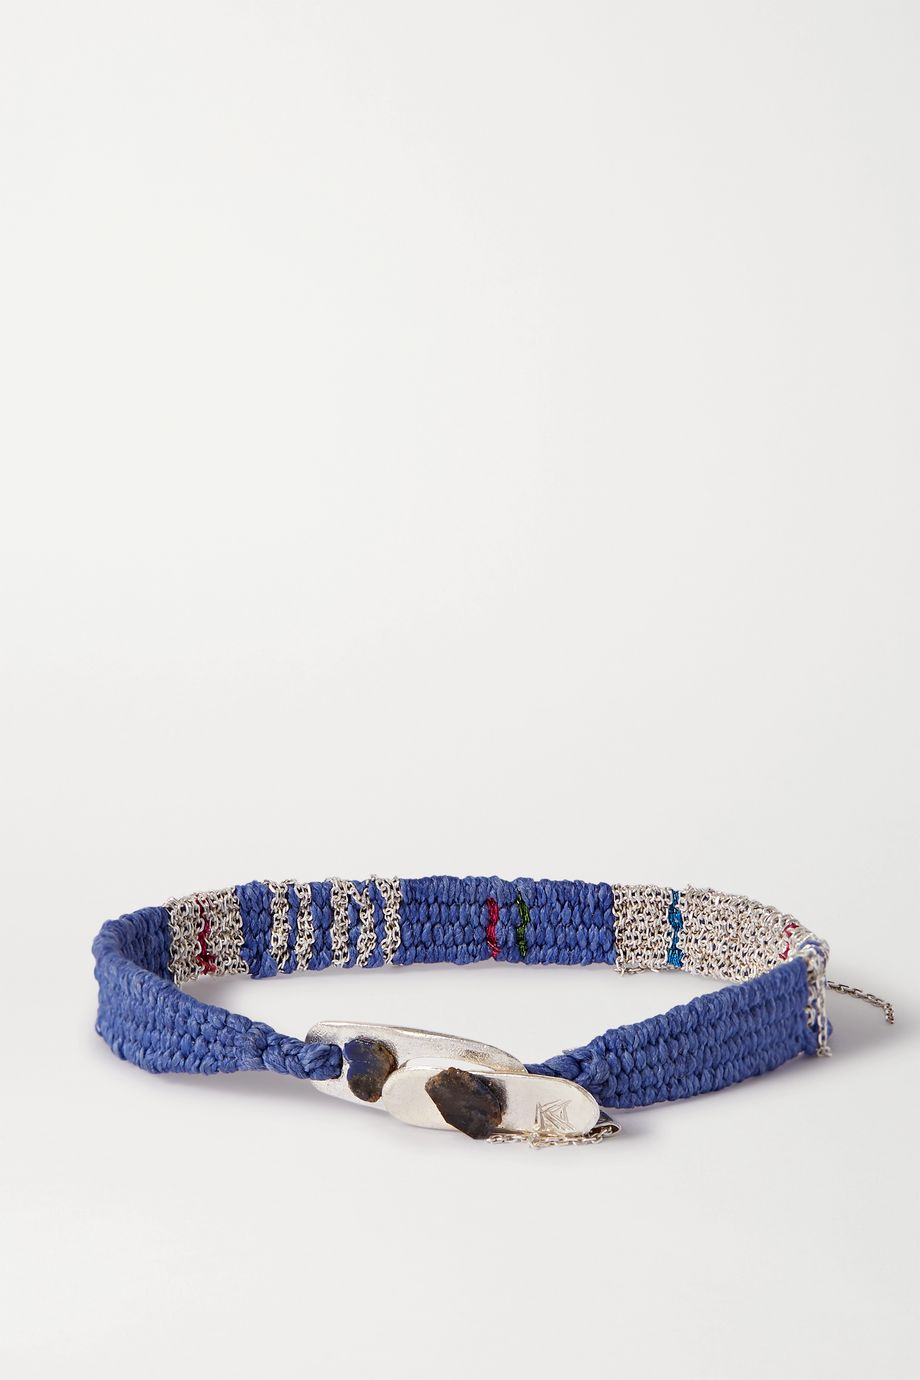 Katia Alpha Woven cord and silver bracelet